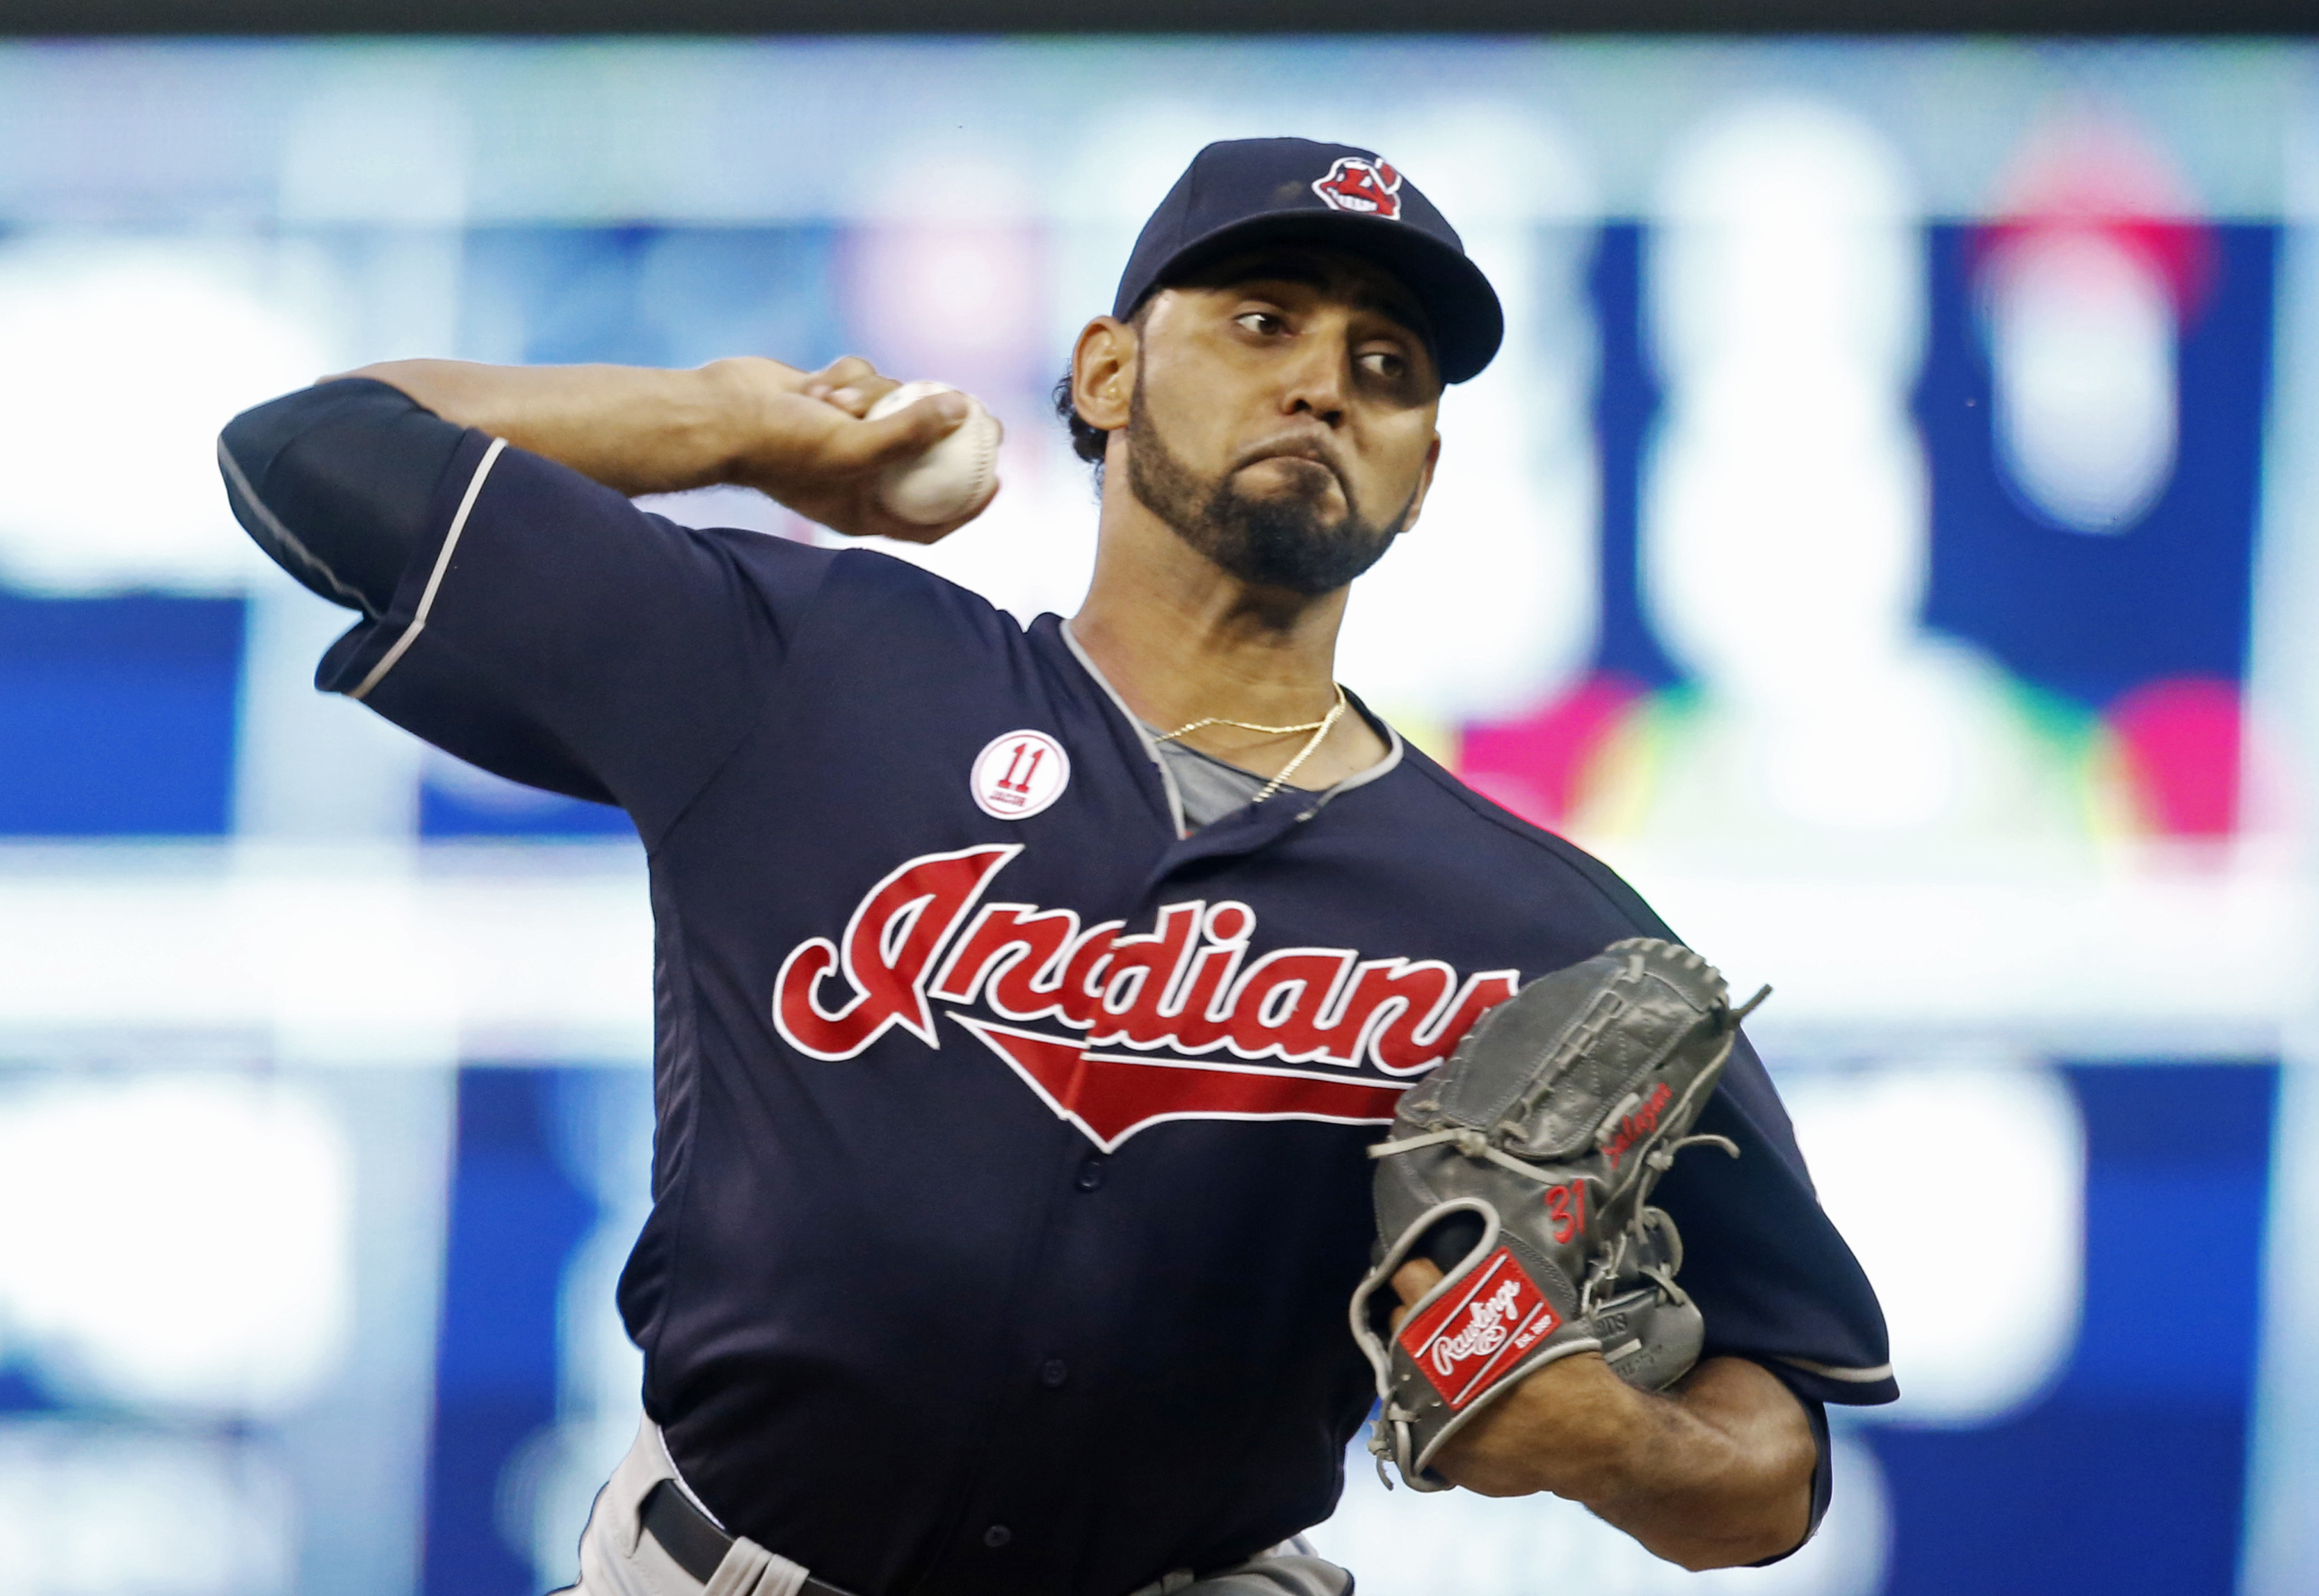 Cleveland Indians pitcher Danny Salazar throws against the Minnesota Twins during the first inning of a baseball game Friday, Sept. 9, 2016, in Minneapolis. (AP Photo/Jim Mone)